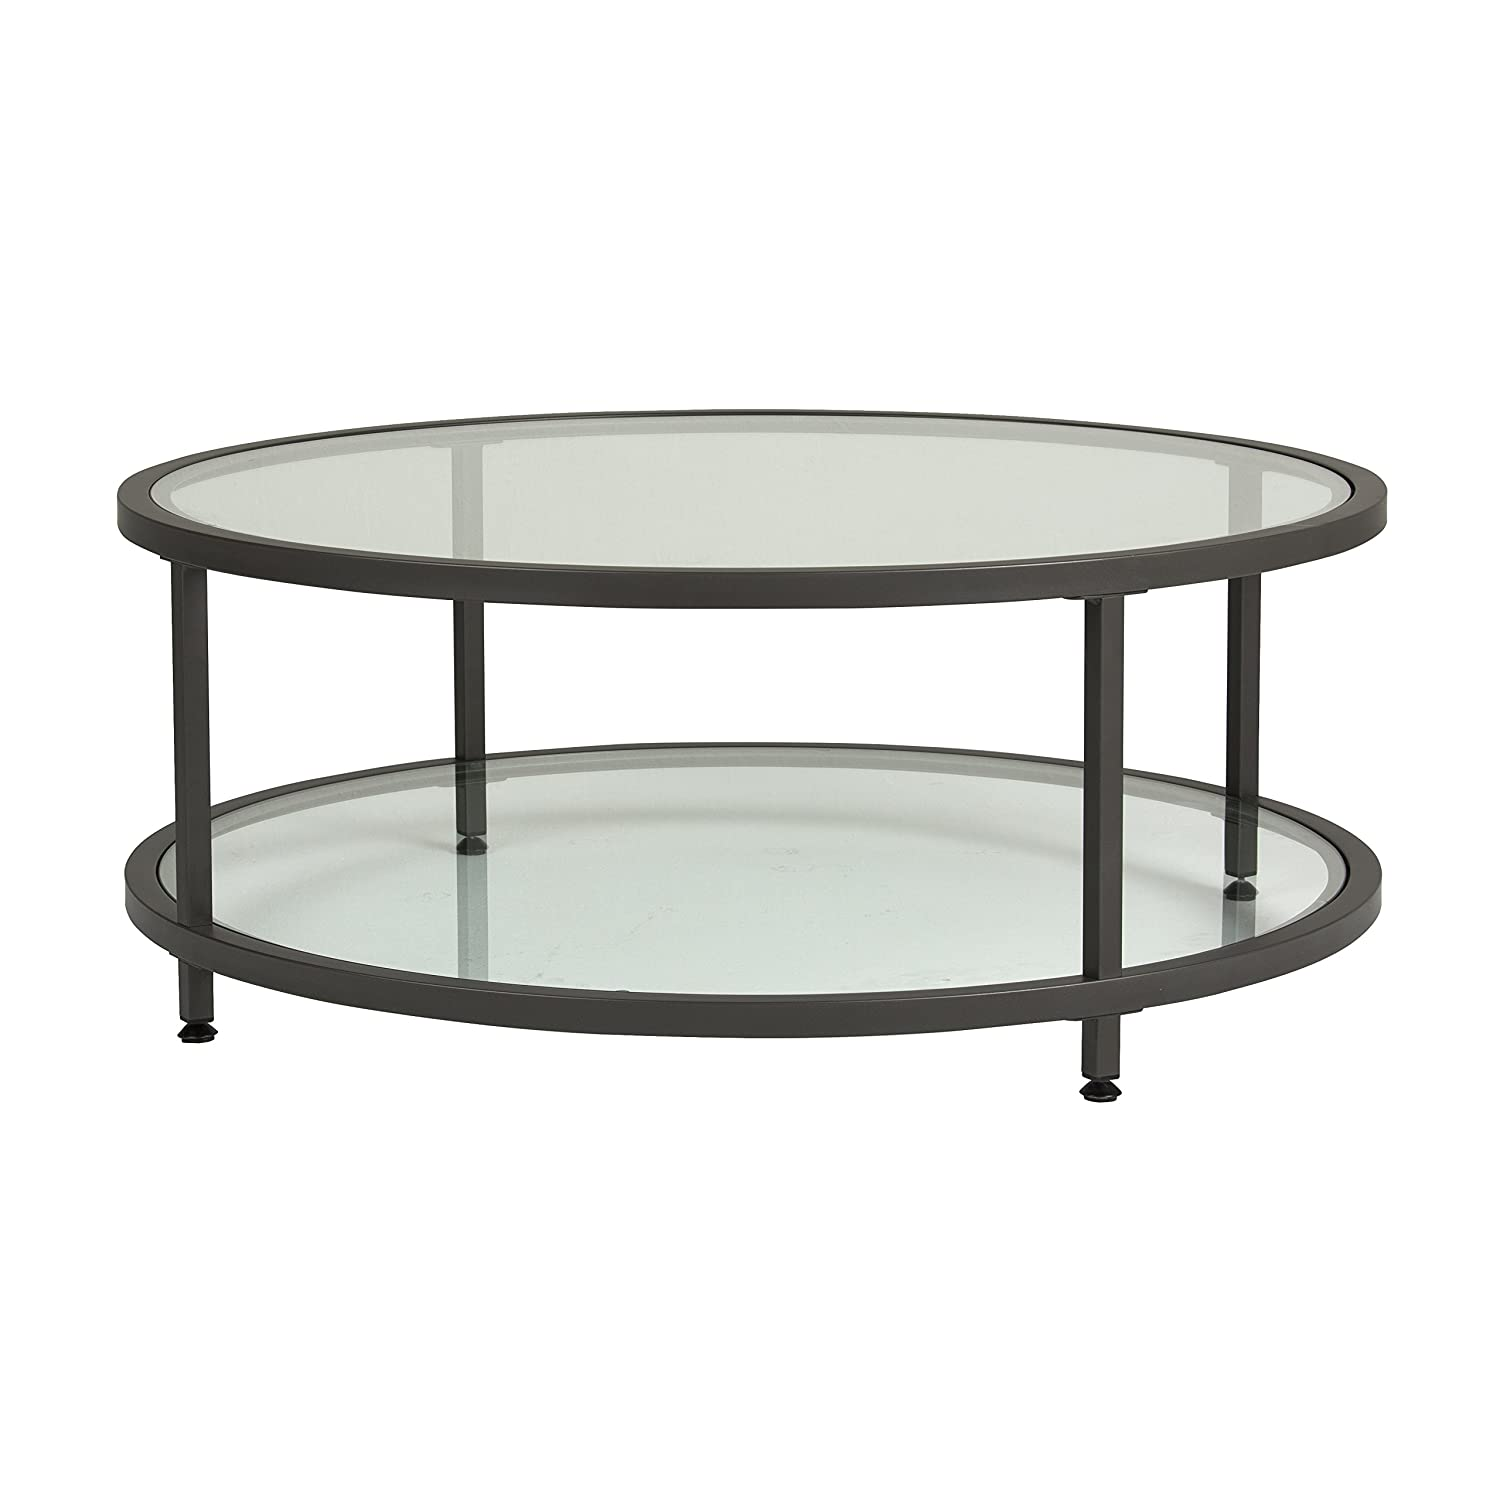 Amazon.com: Studio Designs Home 71003.0 Camber Round Coffee Table In ...